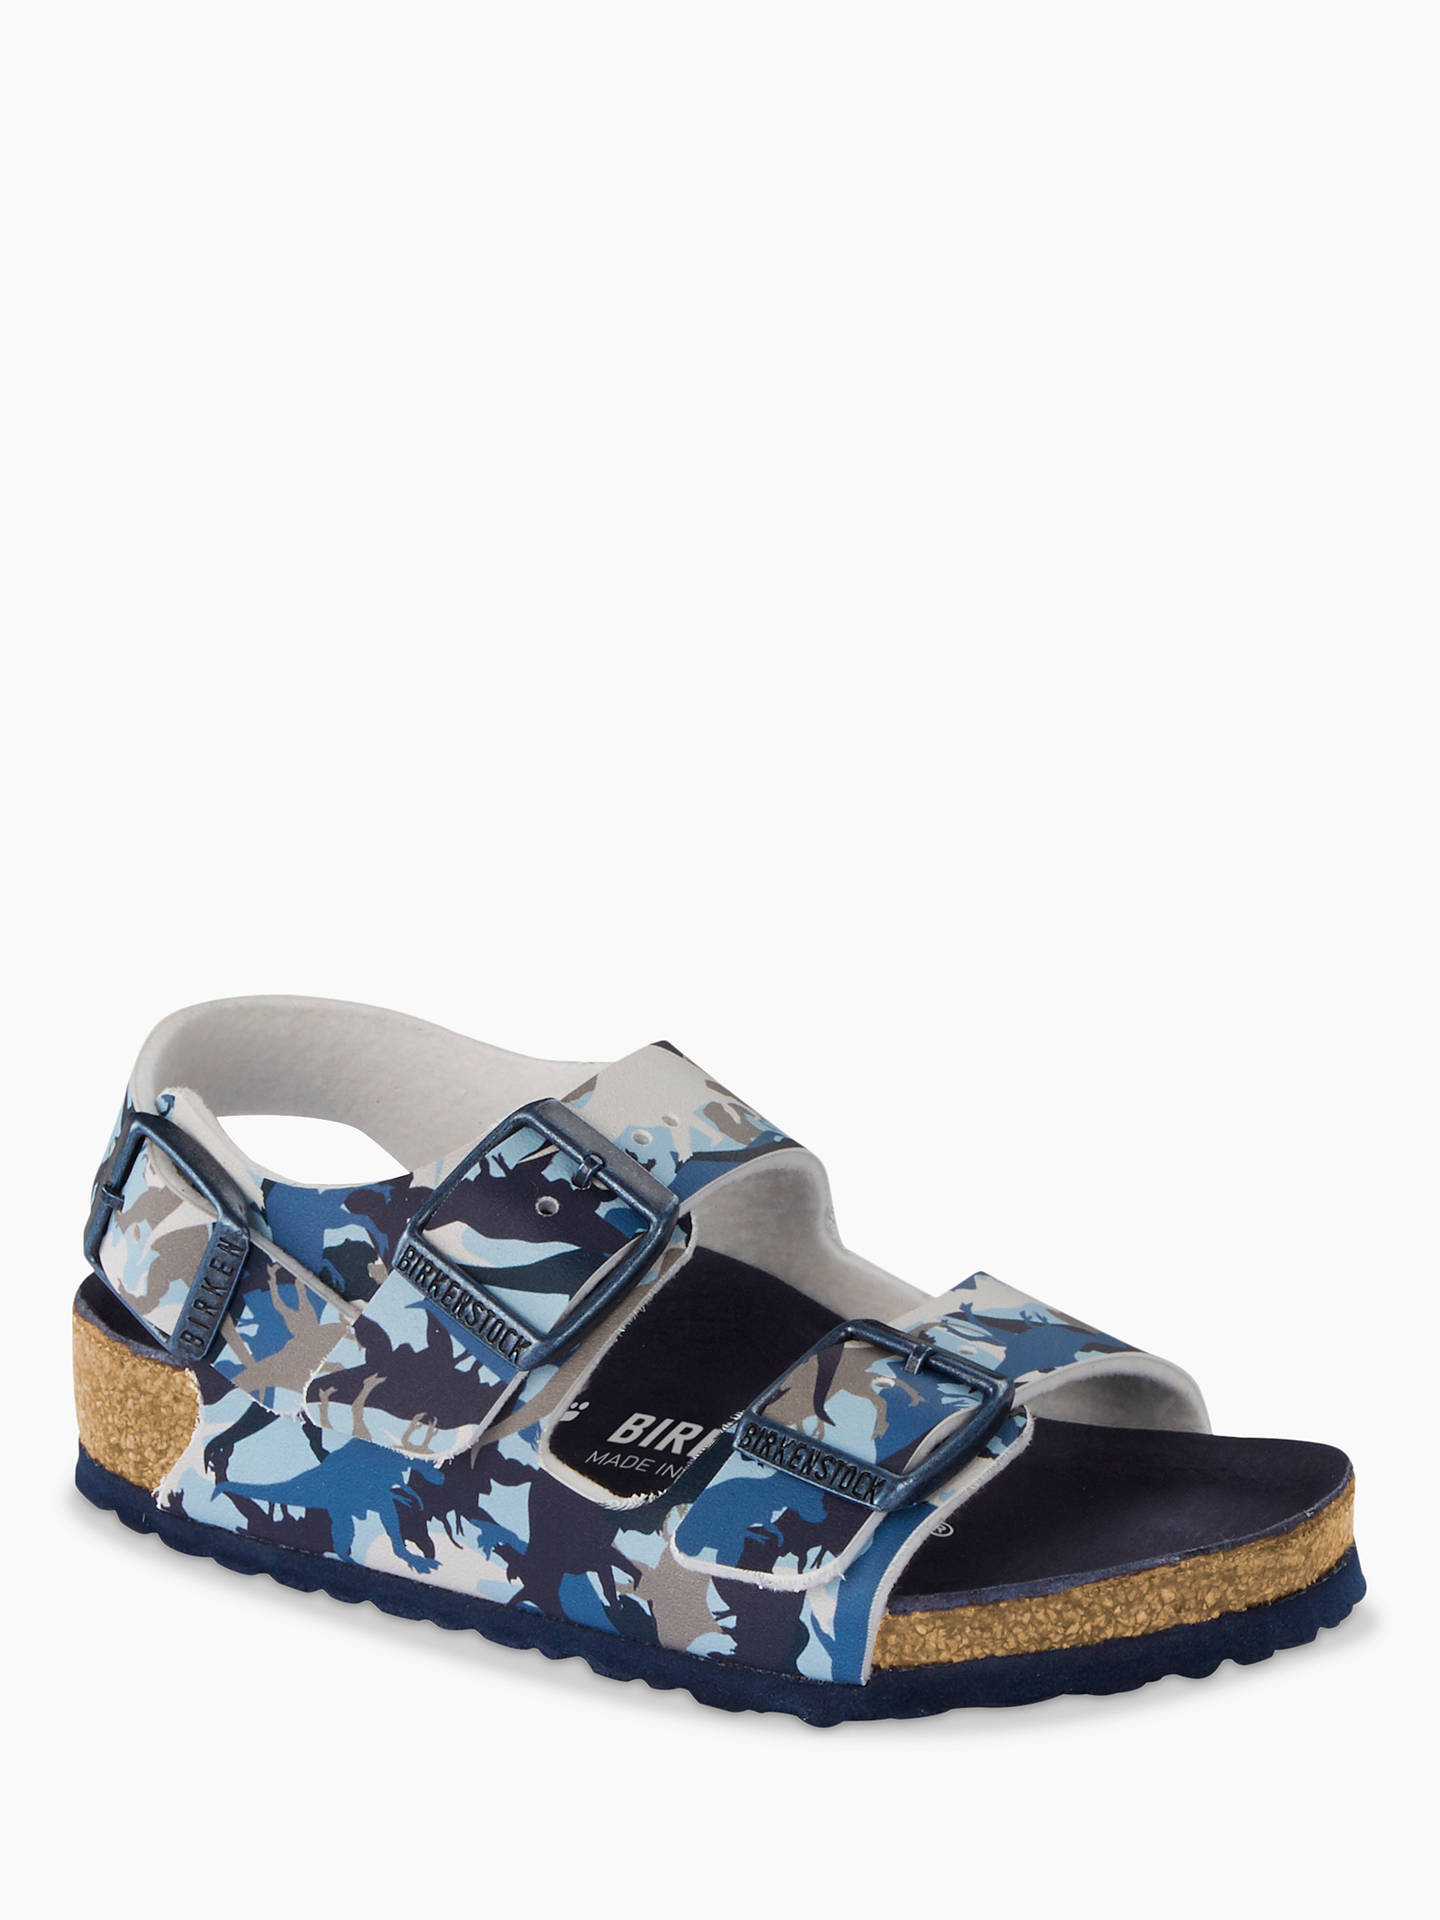 d04ea0f70262 Buy Birkenstock Children s Milano Dino Camo Buckle Sandals